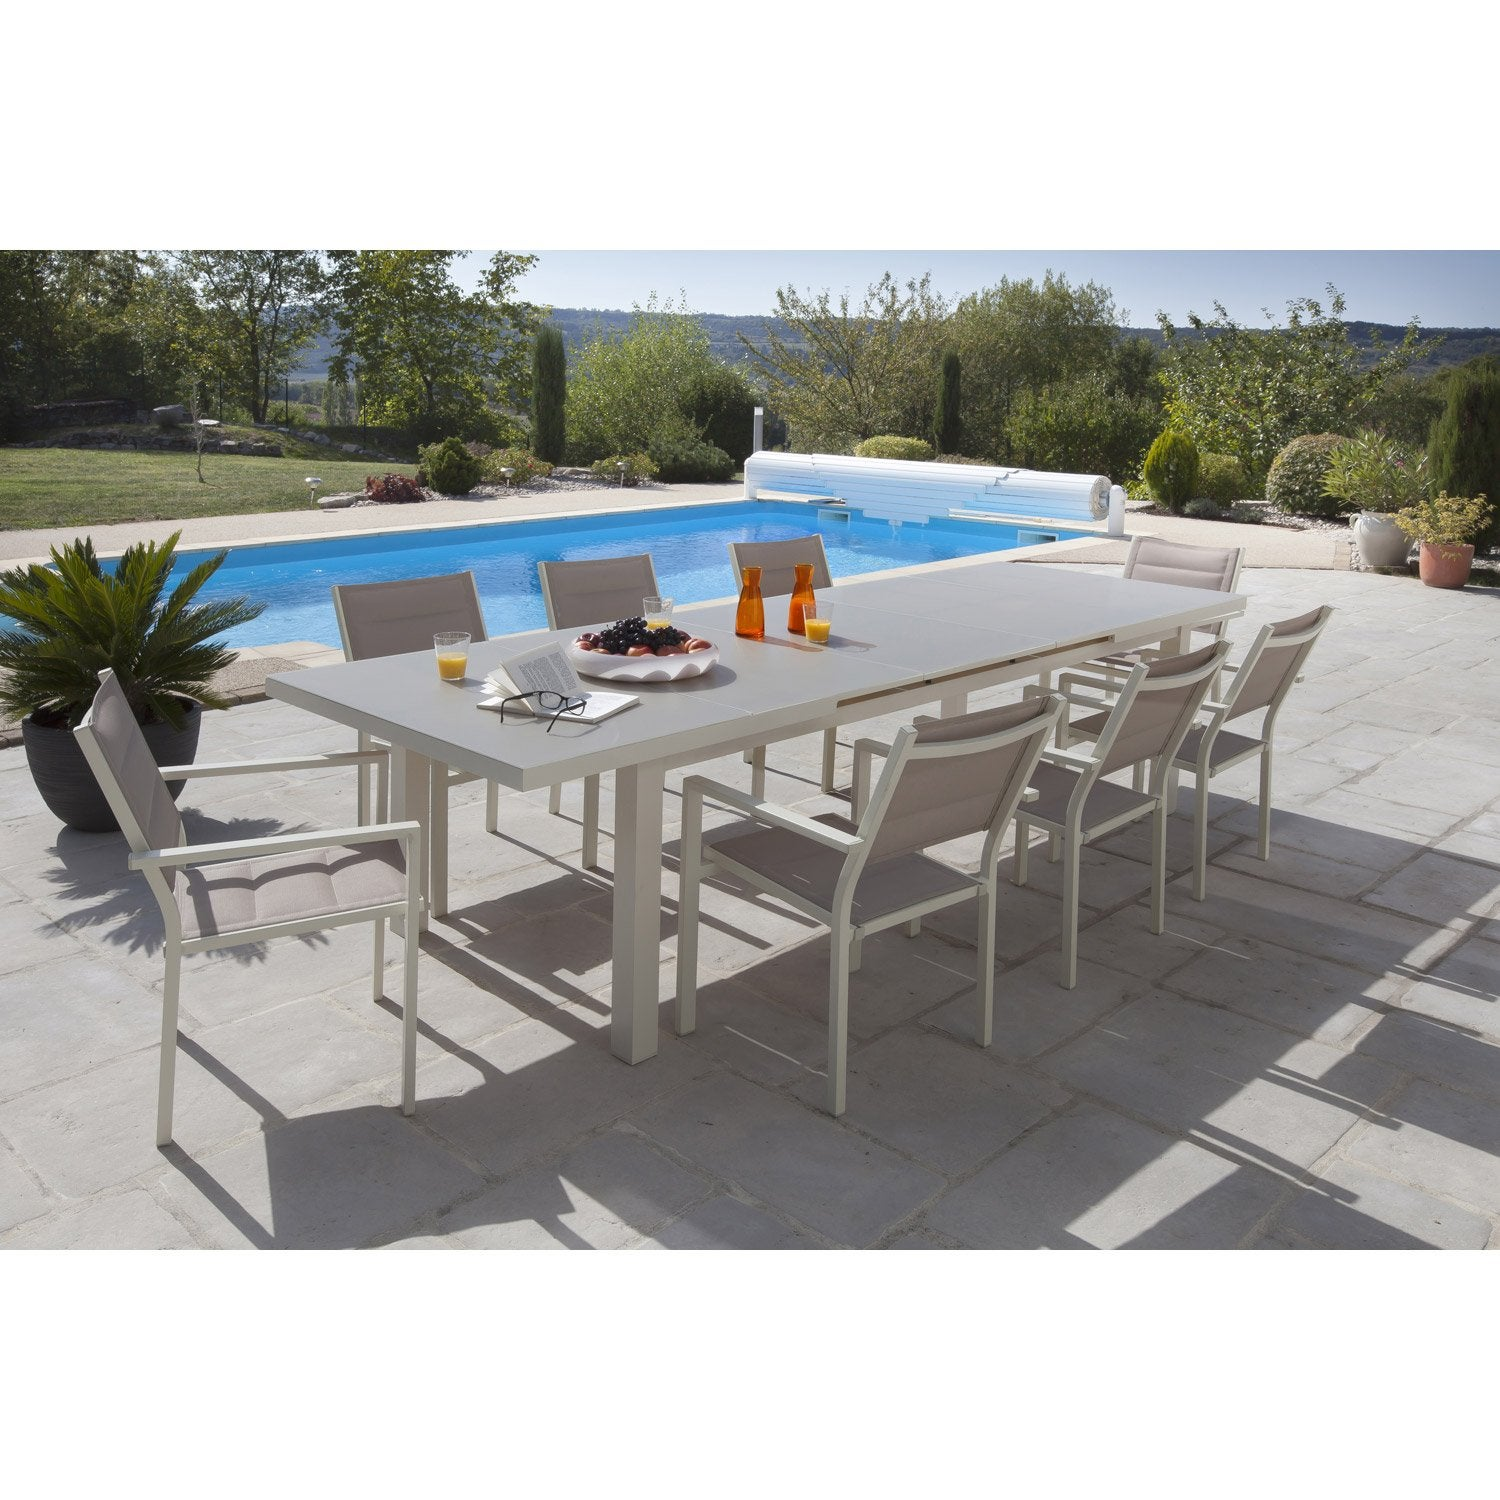 amazing salon de jardin malaga aluminium taupe table et fauteuils leroy merlin leroy merlin with. Black Bedroom Furniture Sets. Home Design Ideas